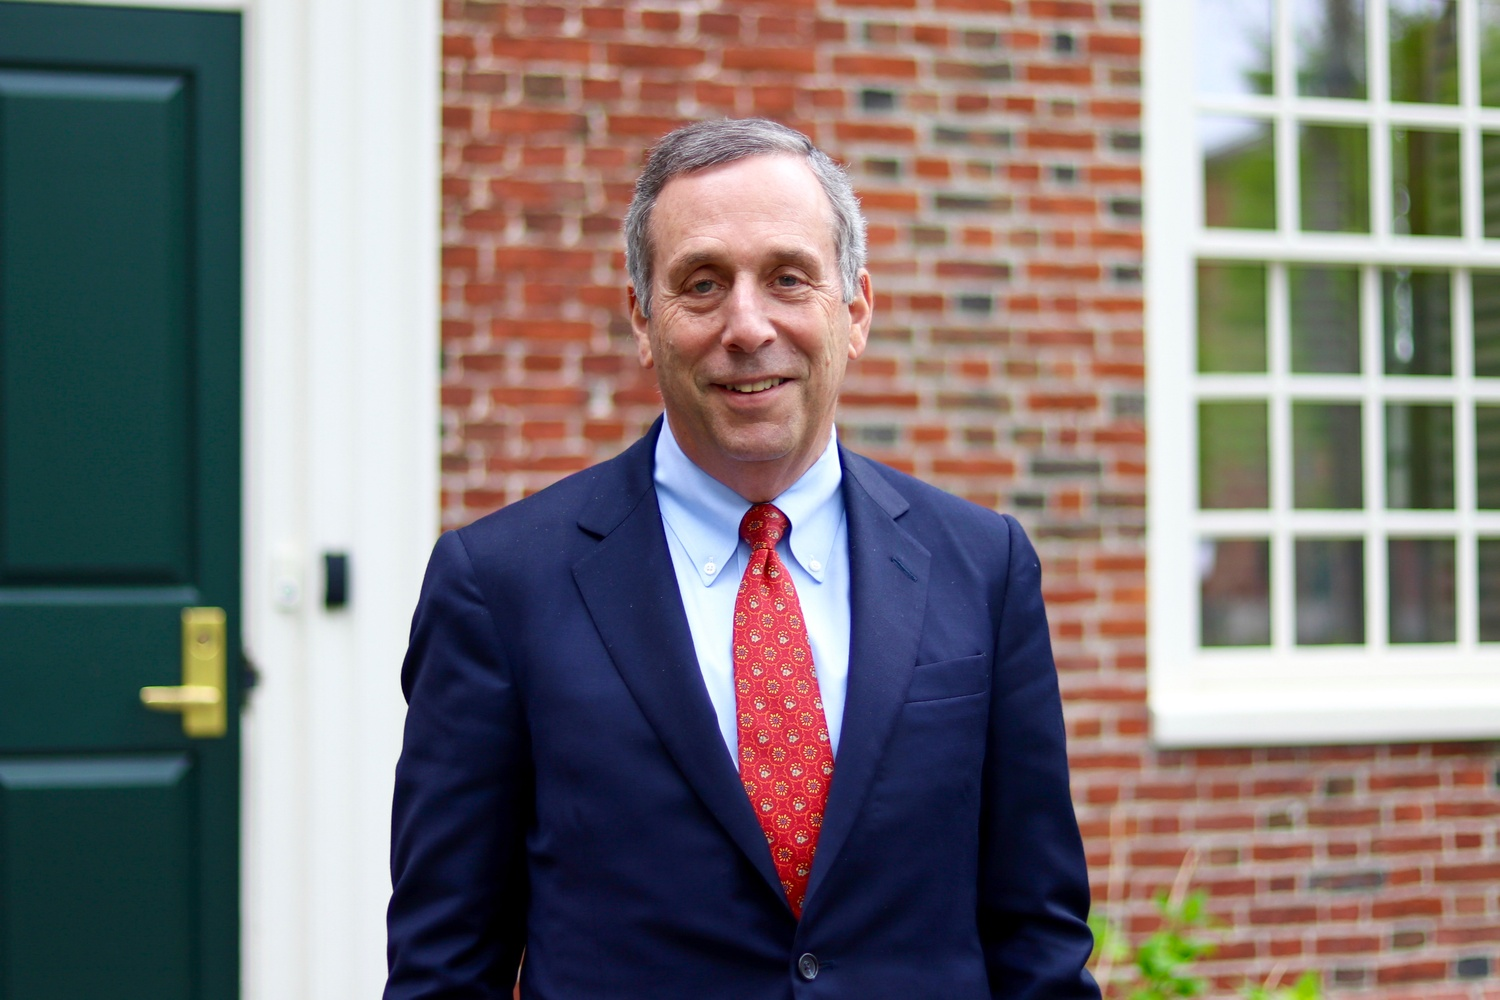 University President-elect Lawrence S. Bacow will face a rising tide of anti-higher education sentiment when he takes office in summer 2018.